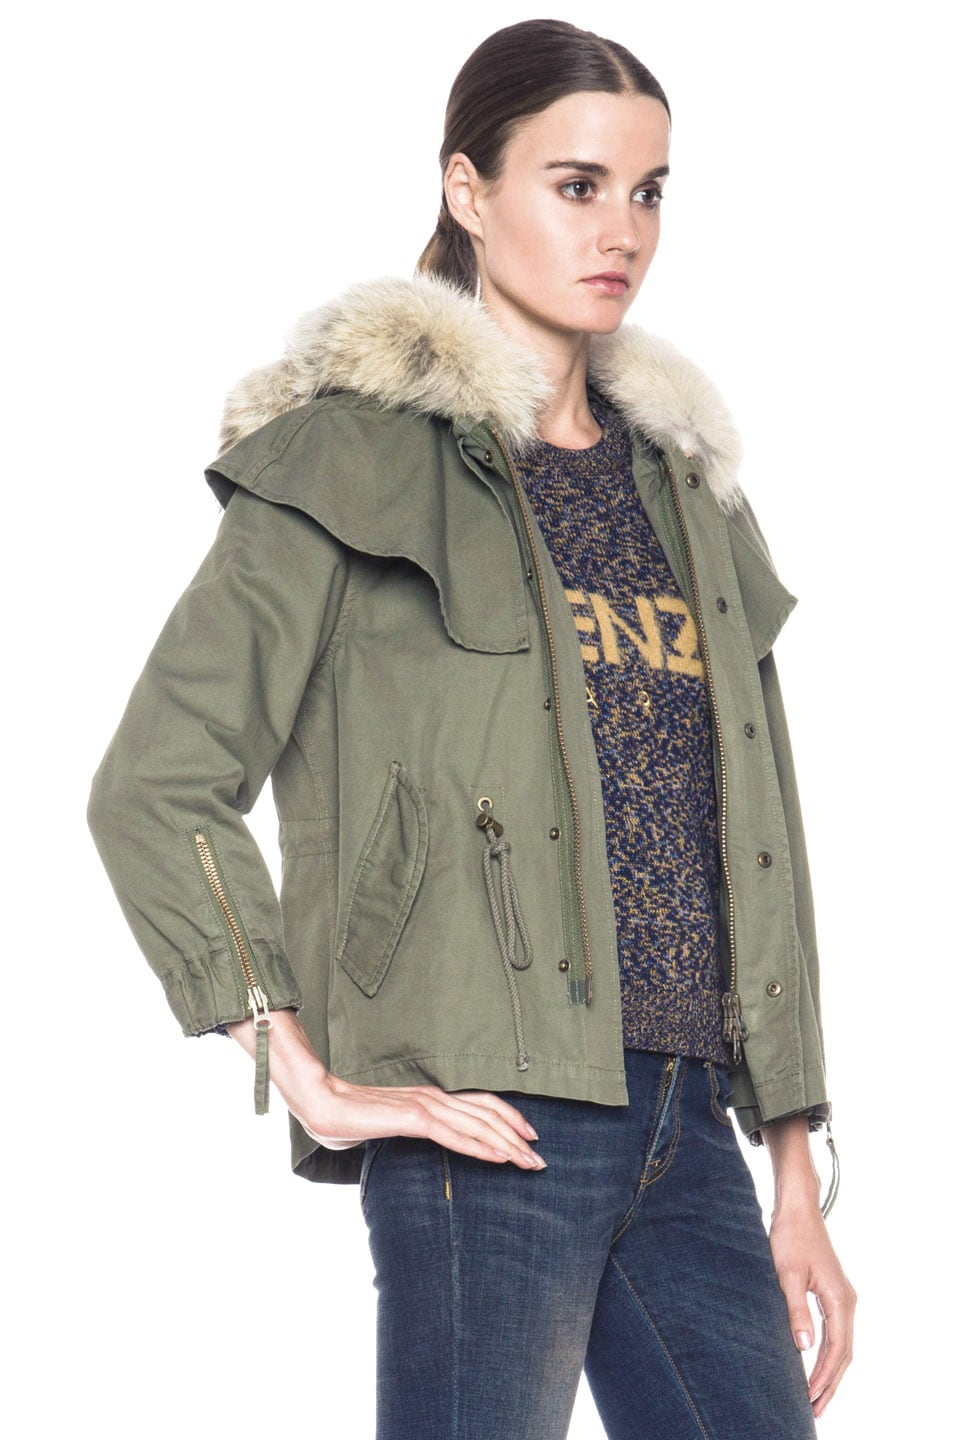 Image 4 of Skaist Taylor Cropped Cape Cotton Jacket with Fur in Army Green